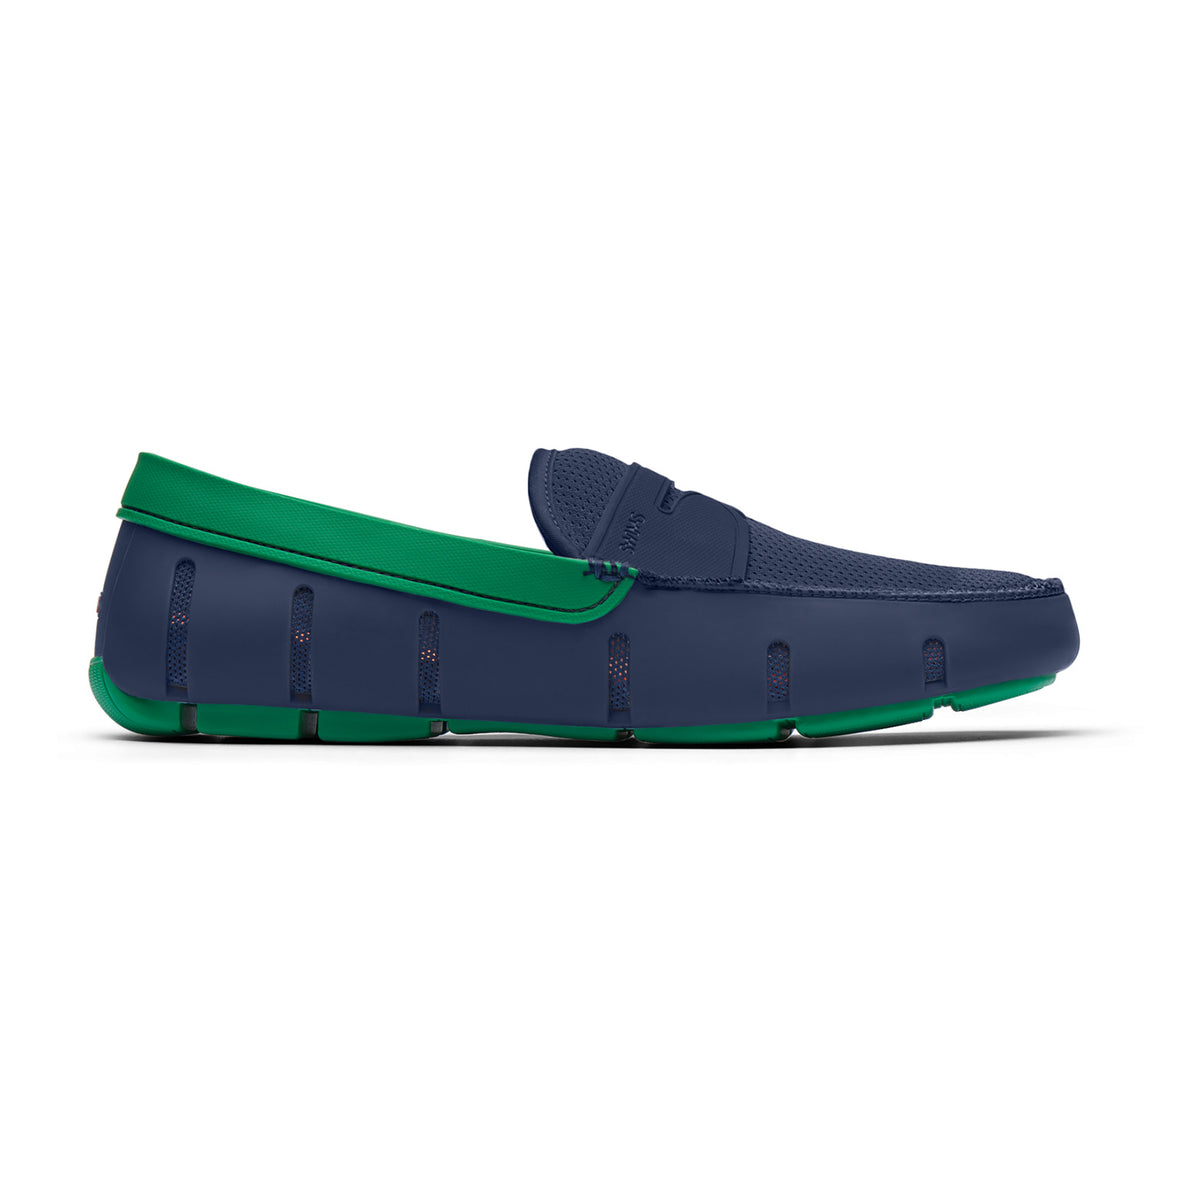 Penny Loafer - background::white,variant::Navy/Jolly Green